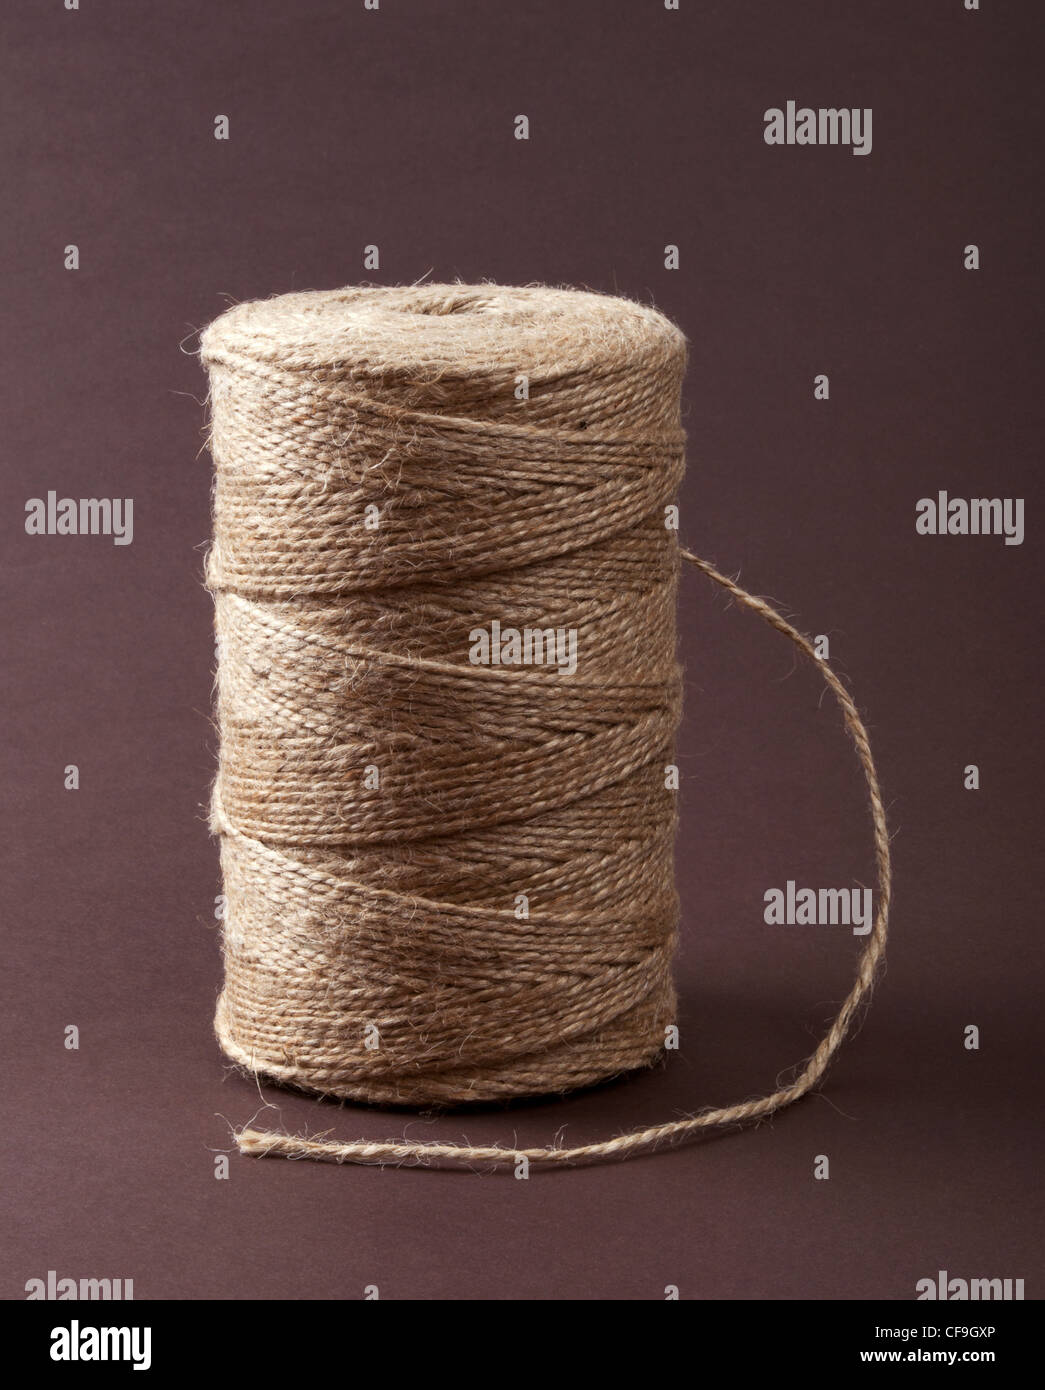 Roll of sisal rope on dark brown background - Stock Image